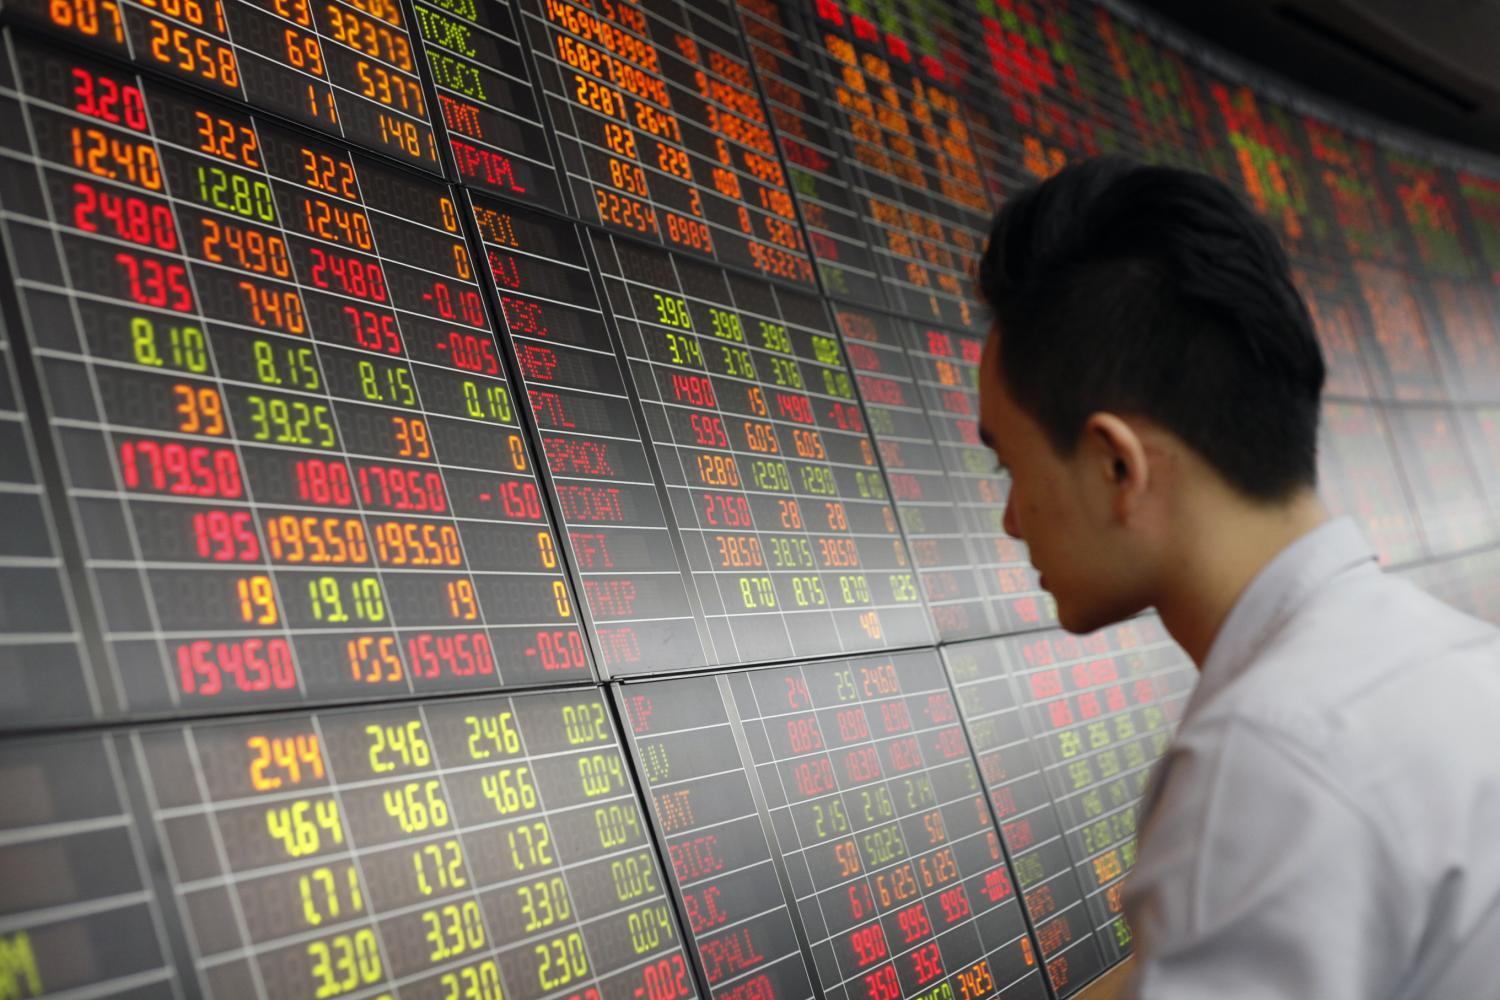 A man looks at an electronic board displaying stock prices at Asia Plus Securities.(Photo by Pornprom Satrabhaya)